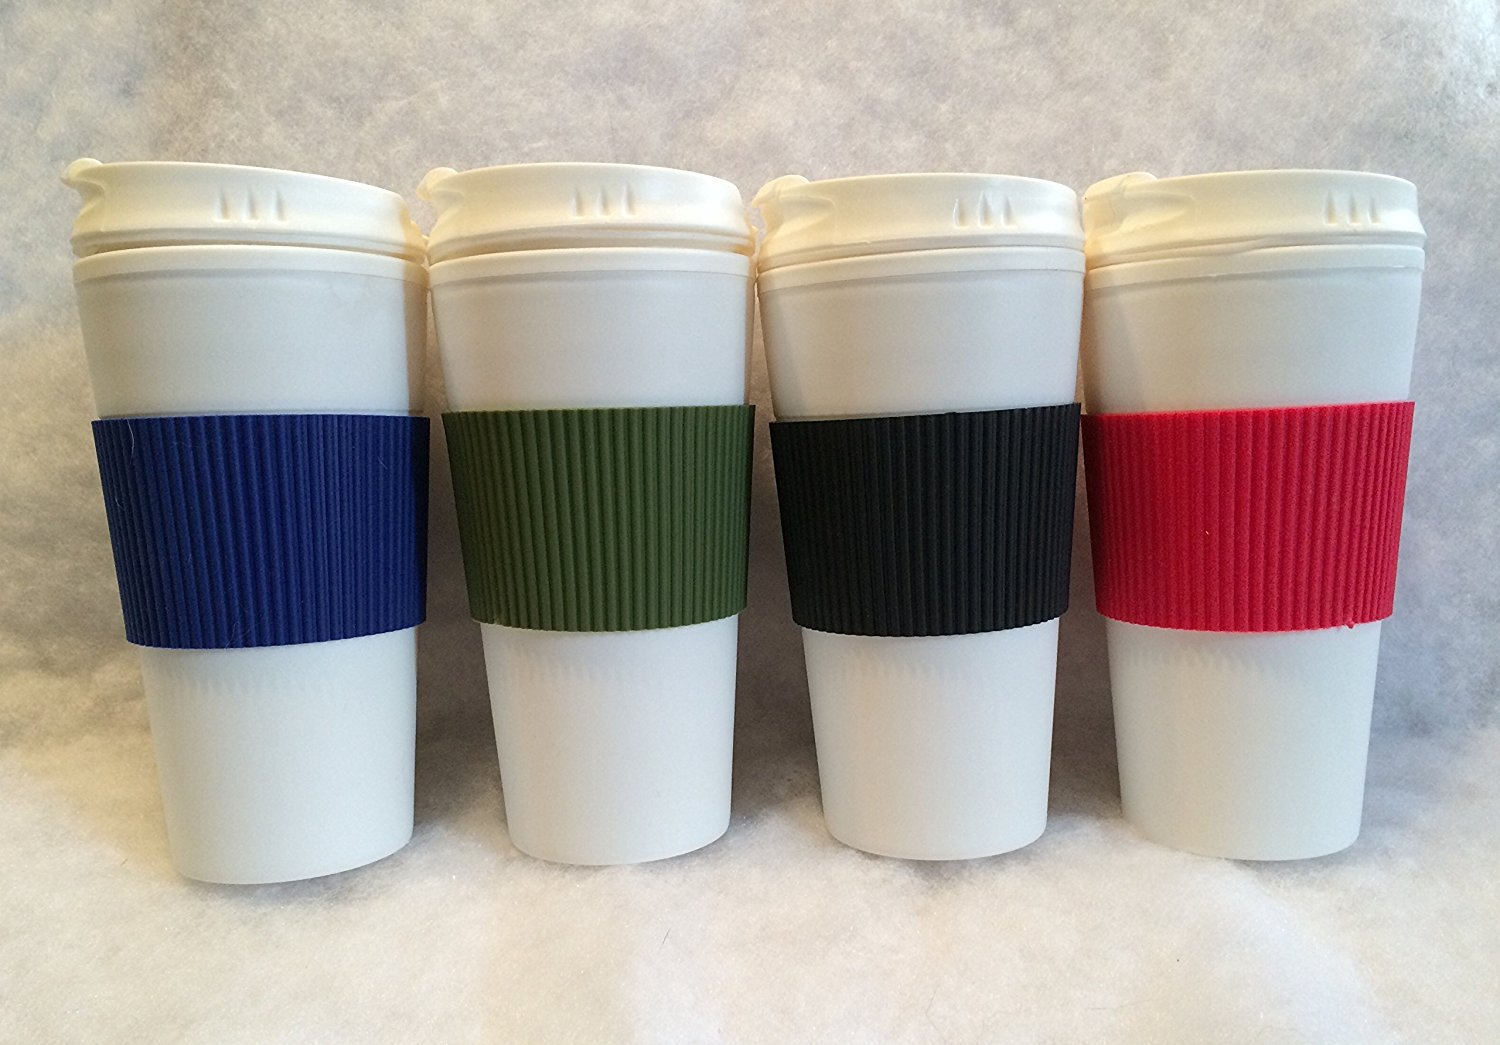 Set of 4 Double Wall Coffee or Tea Travel Mugs with Colorful Wraps and Tab Lids, 16 oz. -Blue, Red, Black, Green by Greenbrier